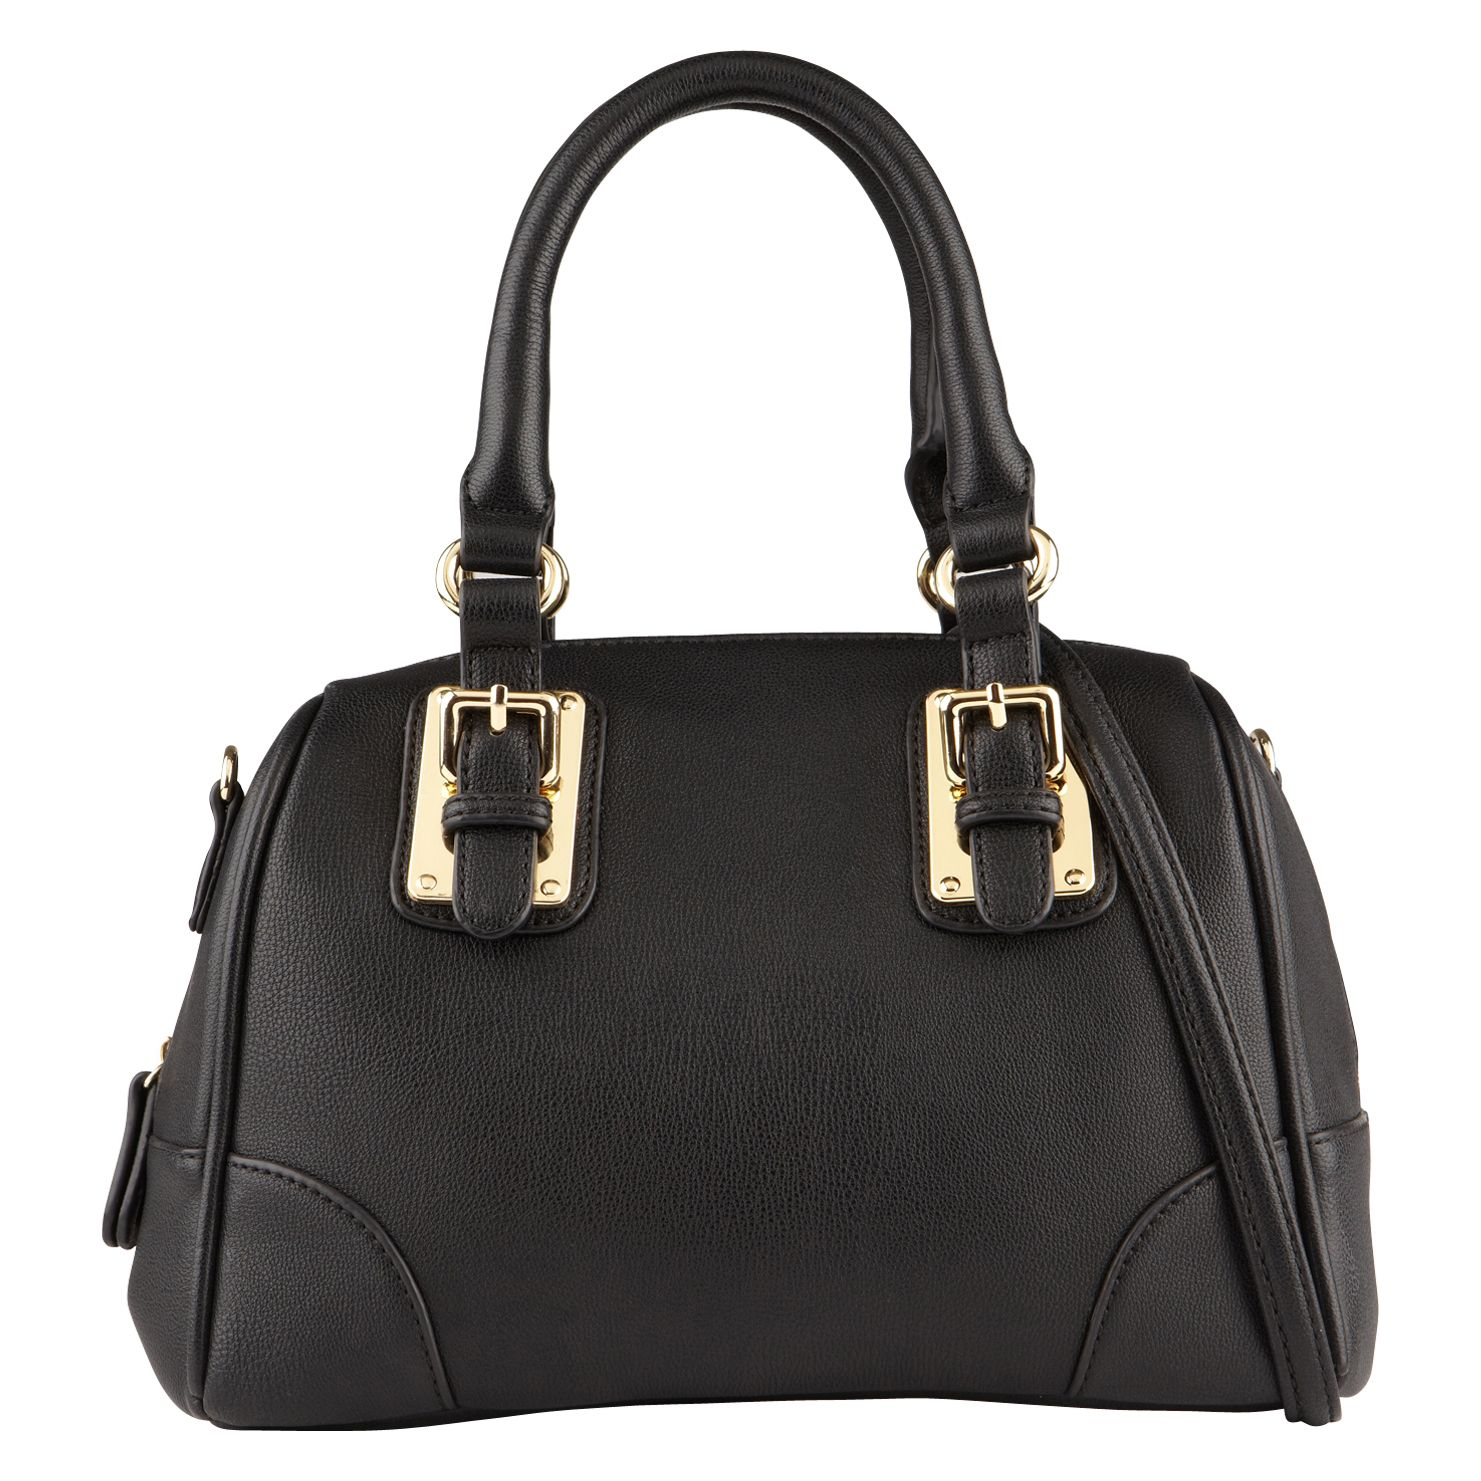 Barager satchel bag